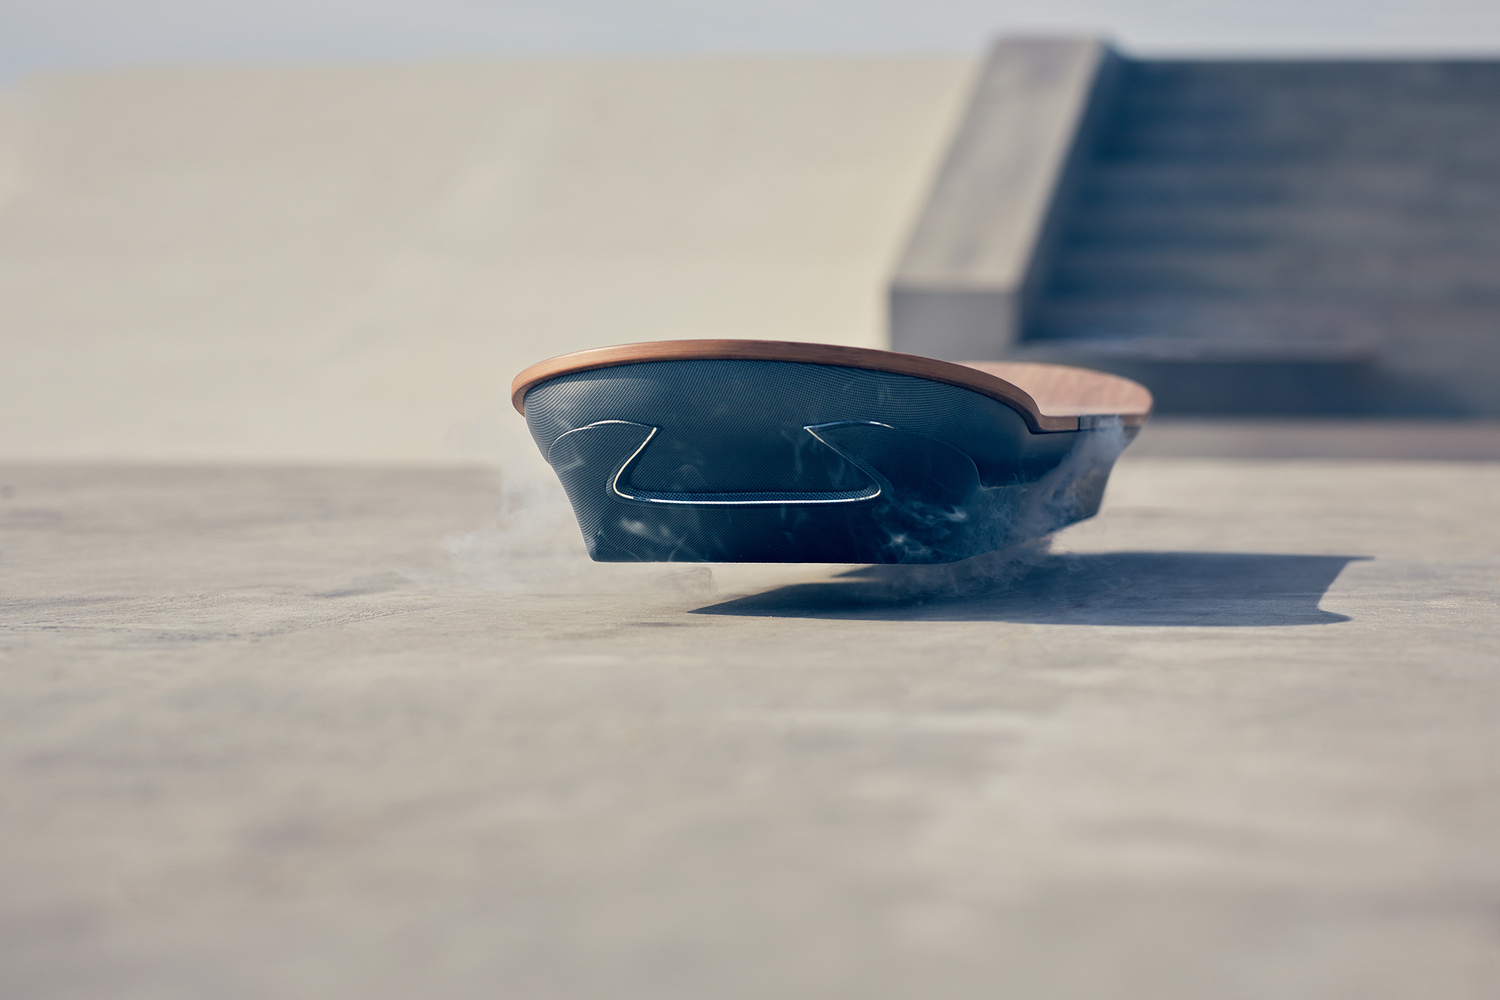 The New Lexus Hoverboard Is Lame